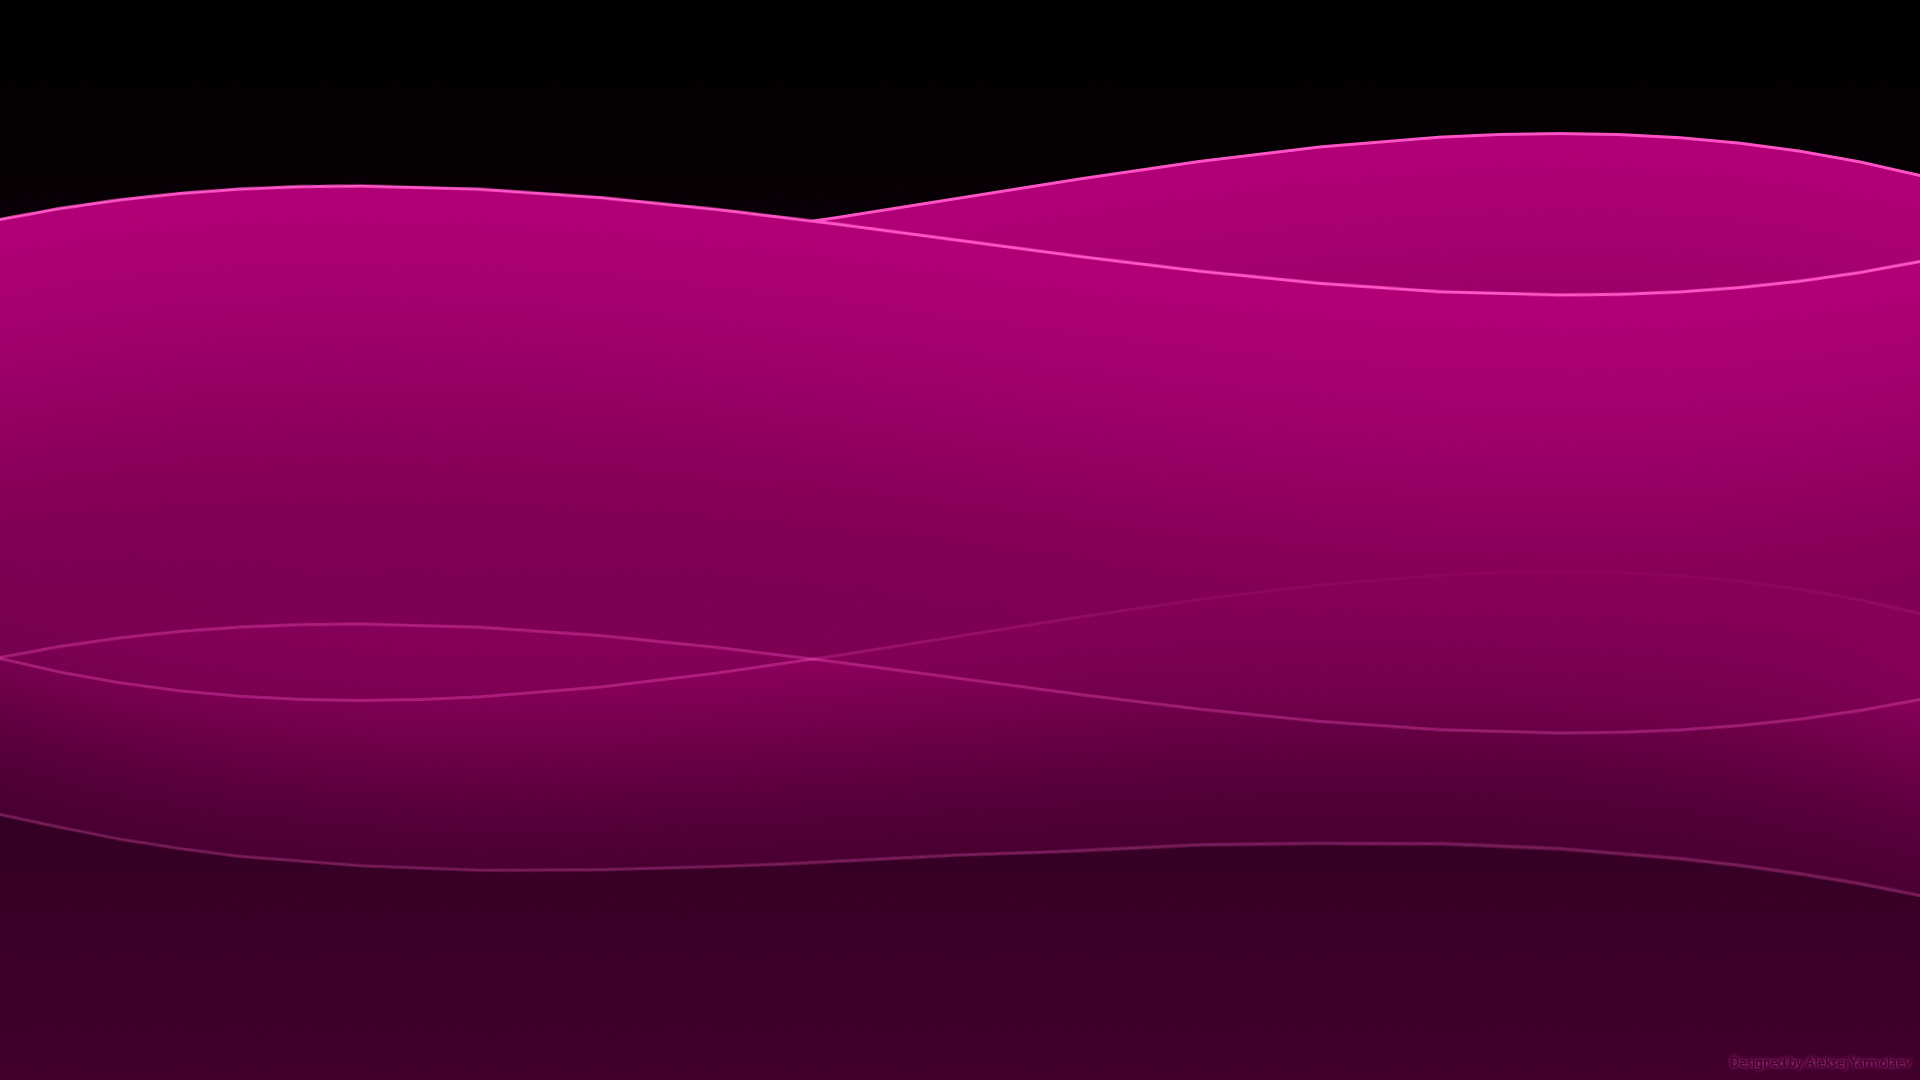 Deep Pink Wallpapers